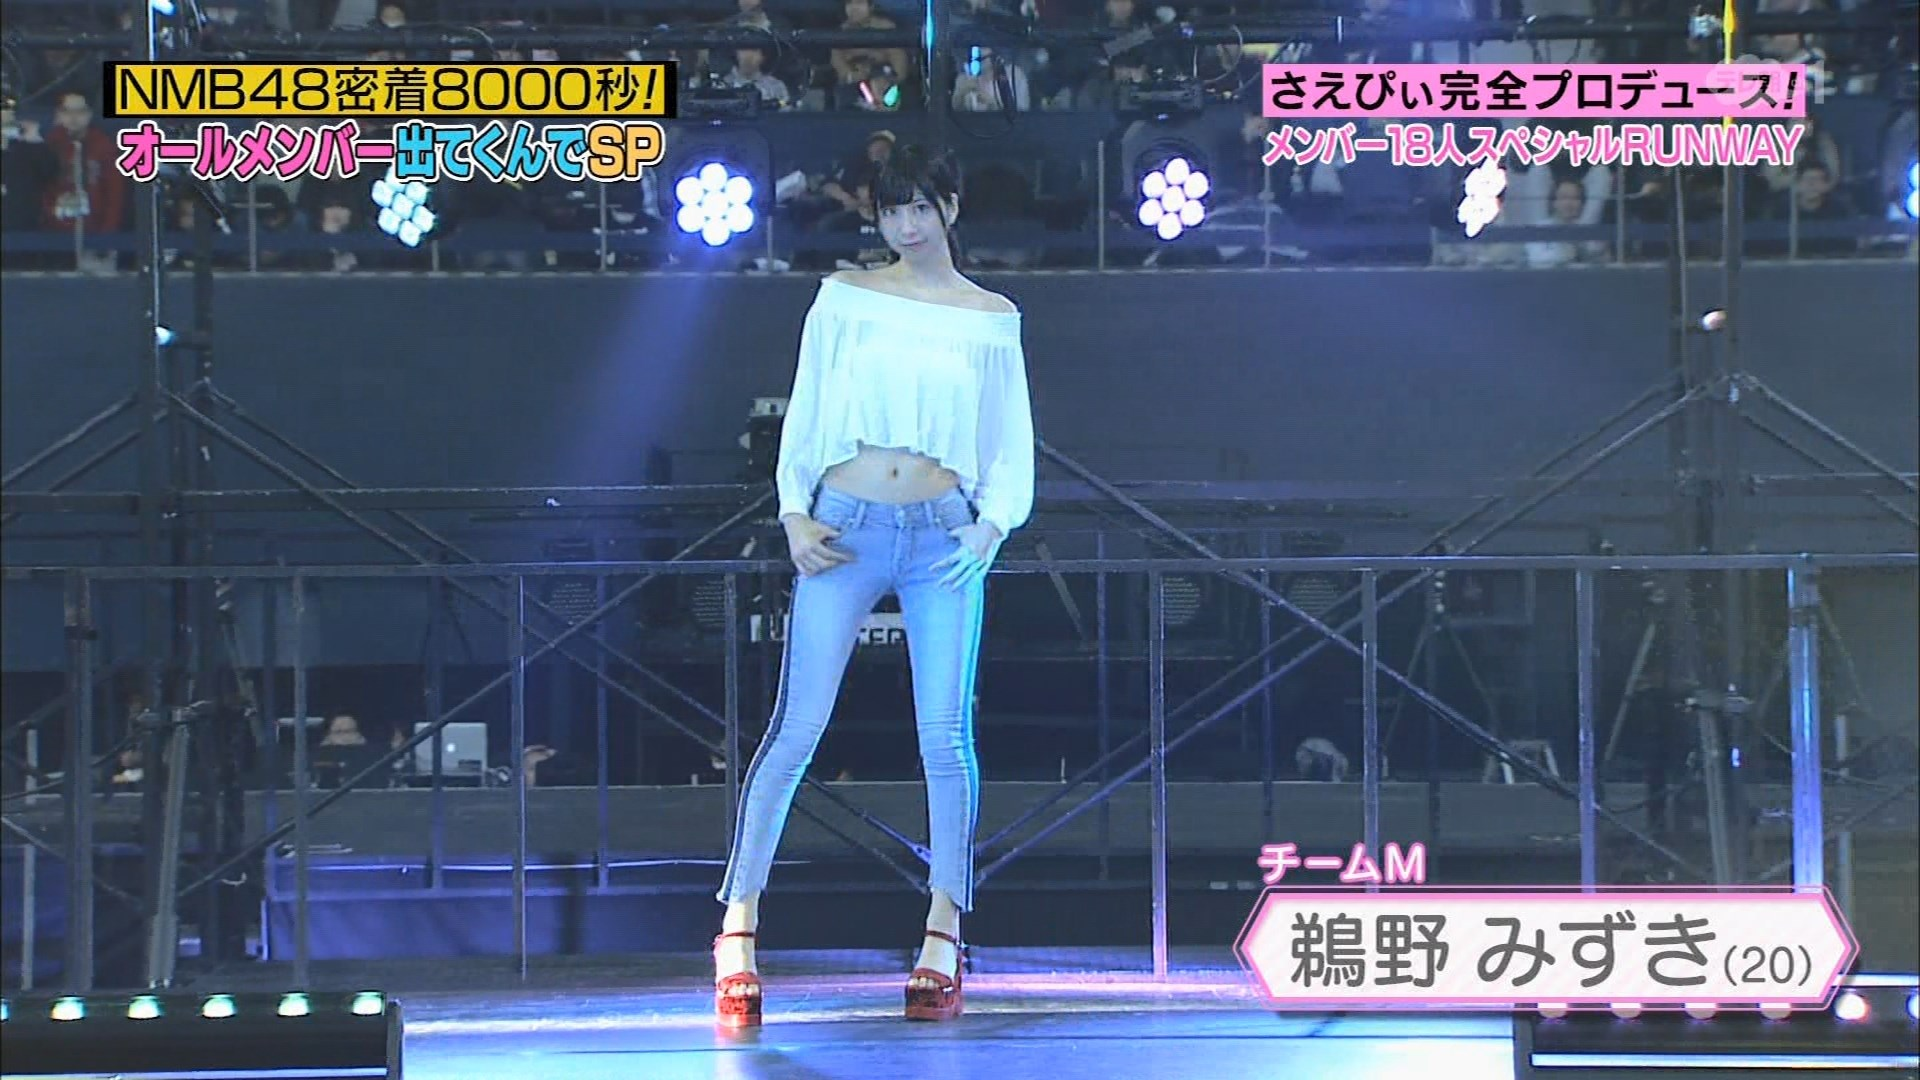 NMB48密着!8000秒 オールメンバー出てくんでSP・RUNWAY SAE MURASECollection